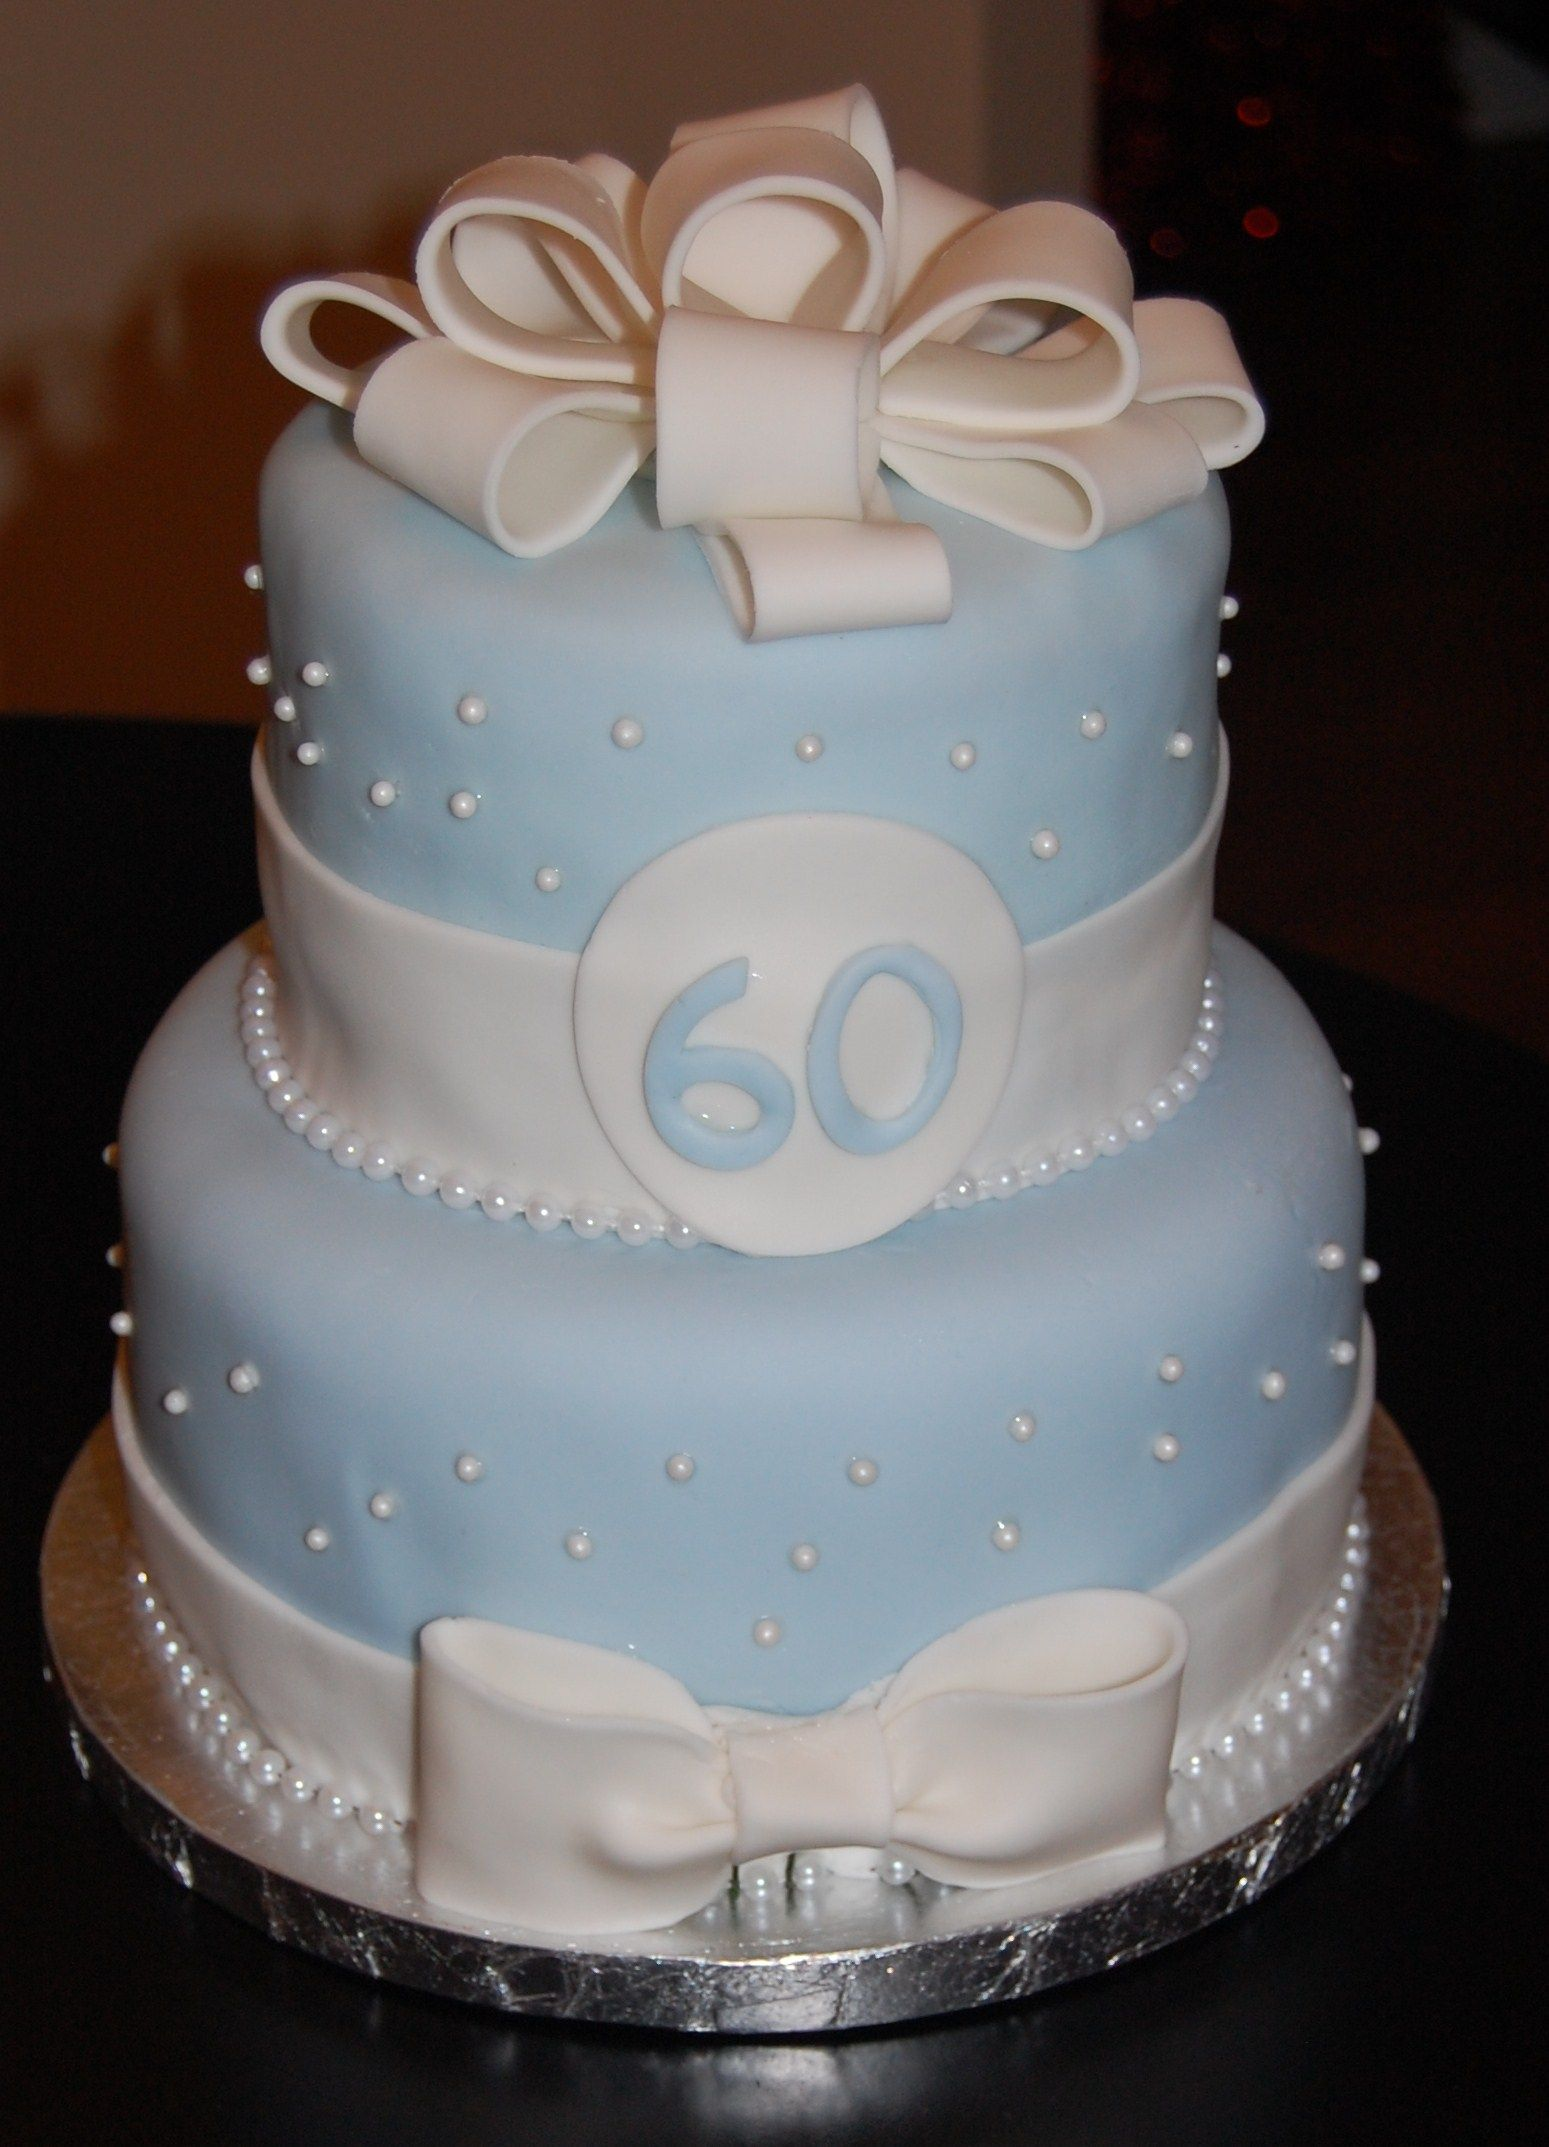 60th+birthday+cake+designs Cake Inspiration Pinterest ...